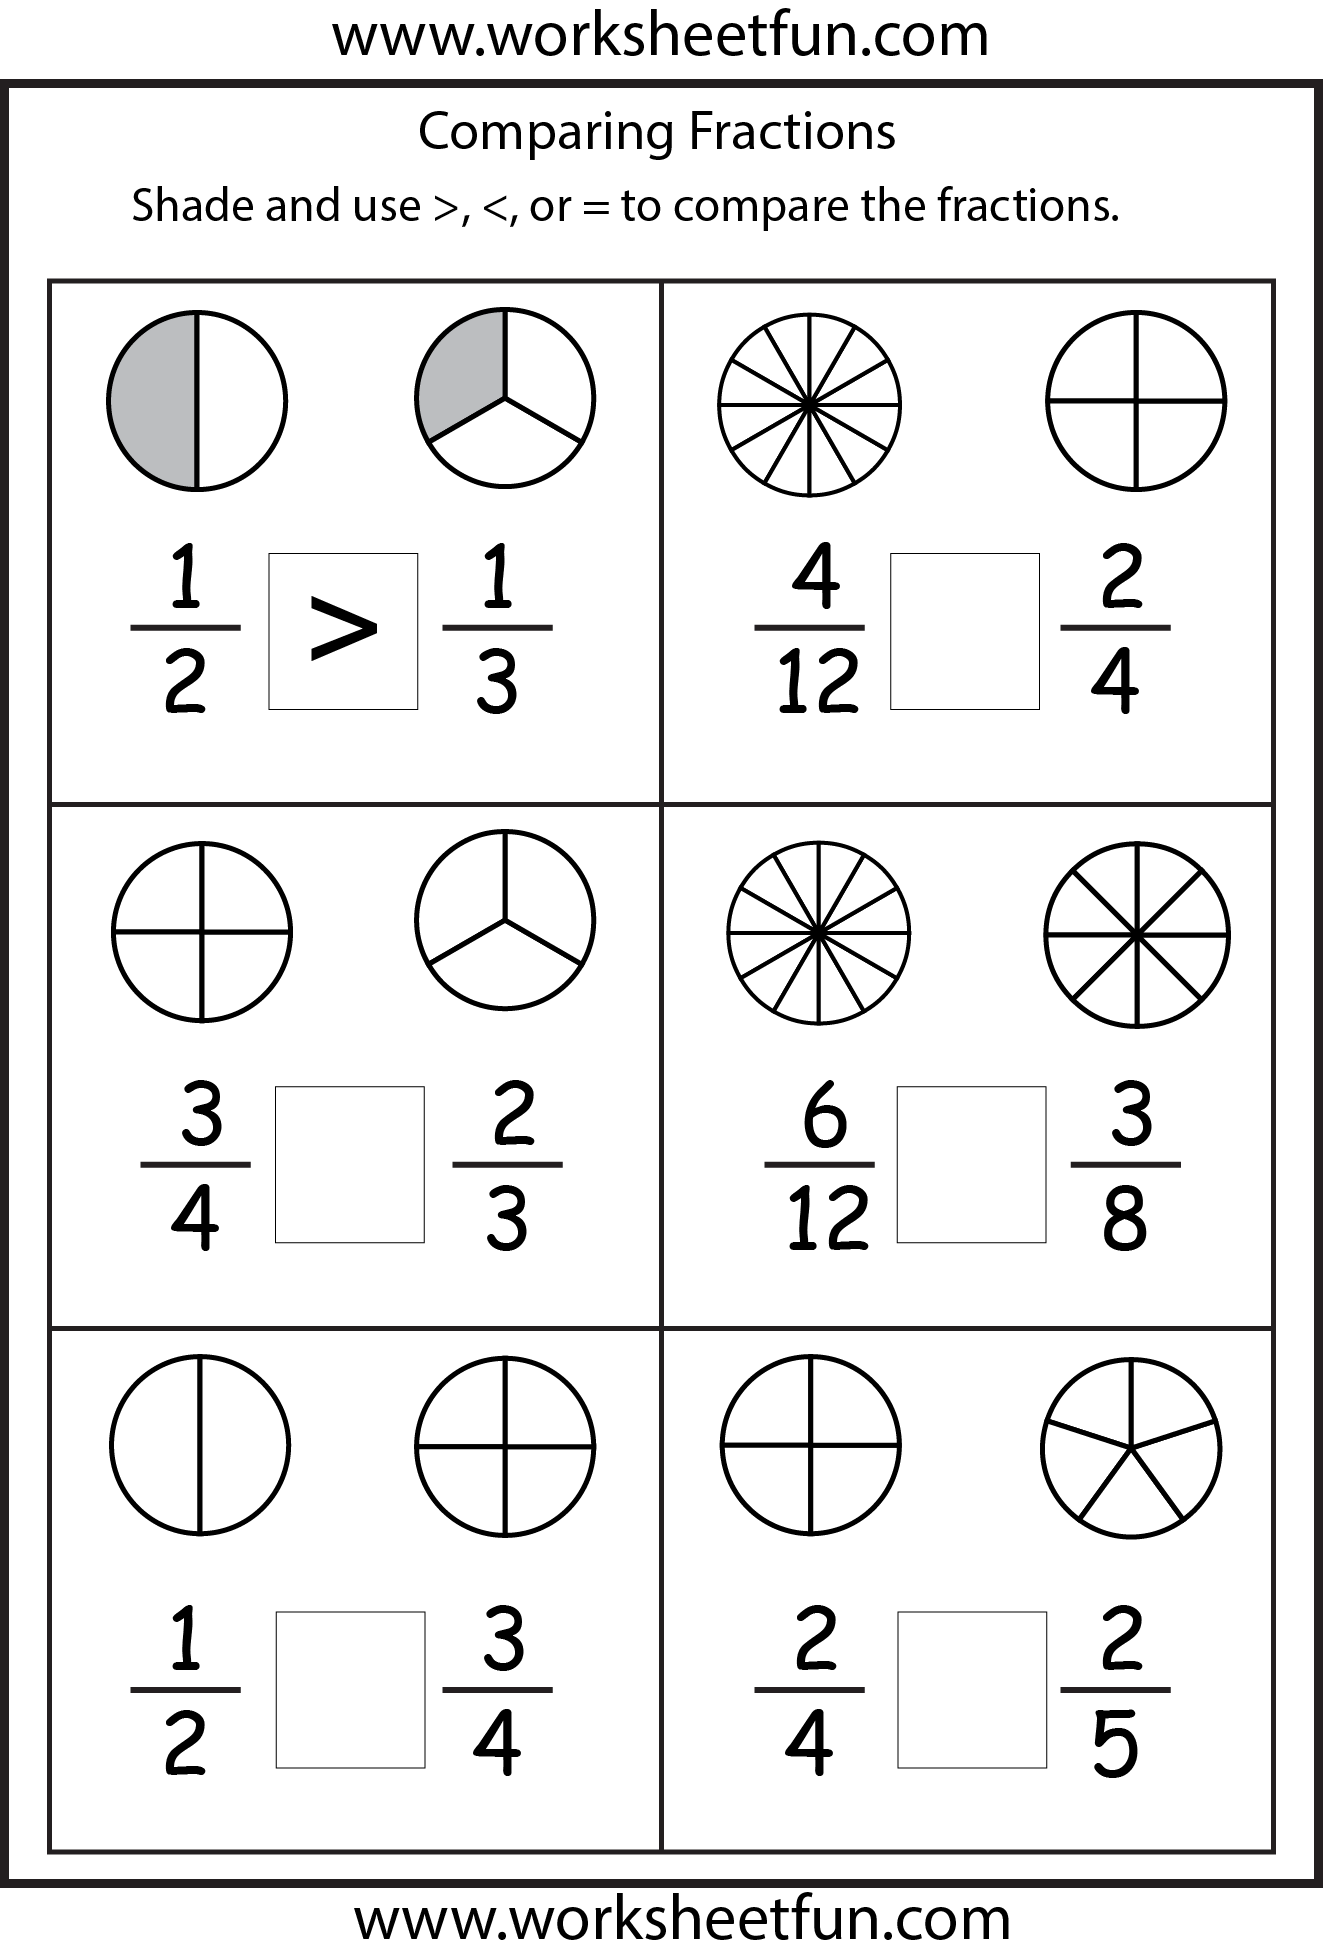 hight resolution of 21 Best 3nd Grade Math Worksheets To Print images on Best Worksheets  Collection